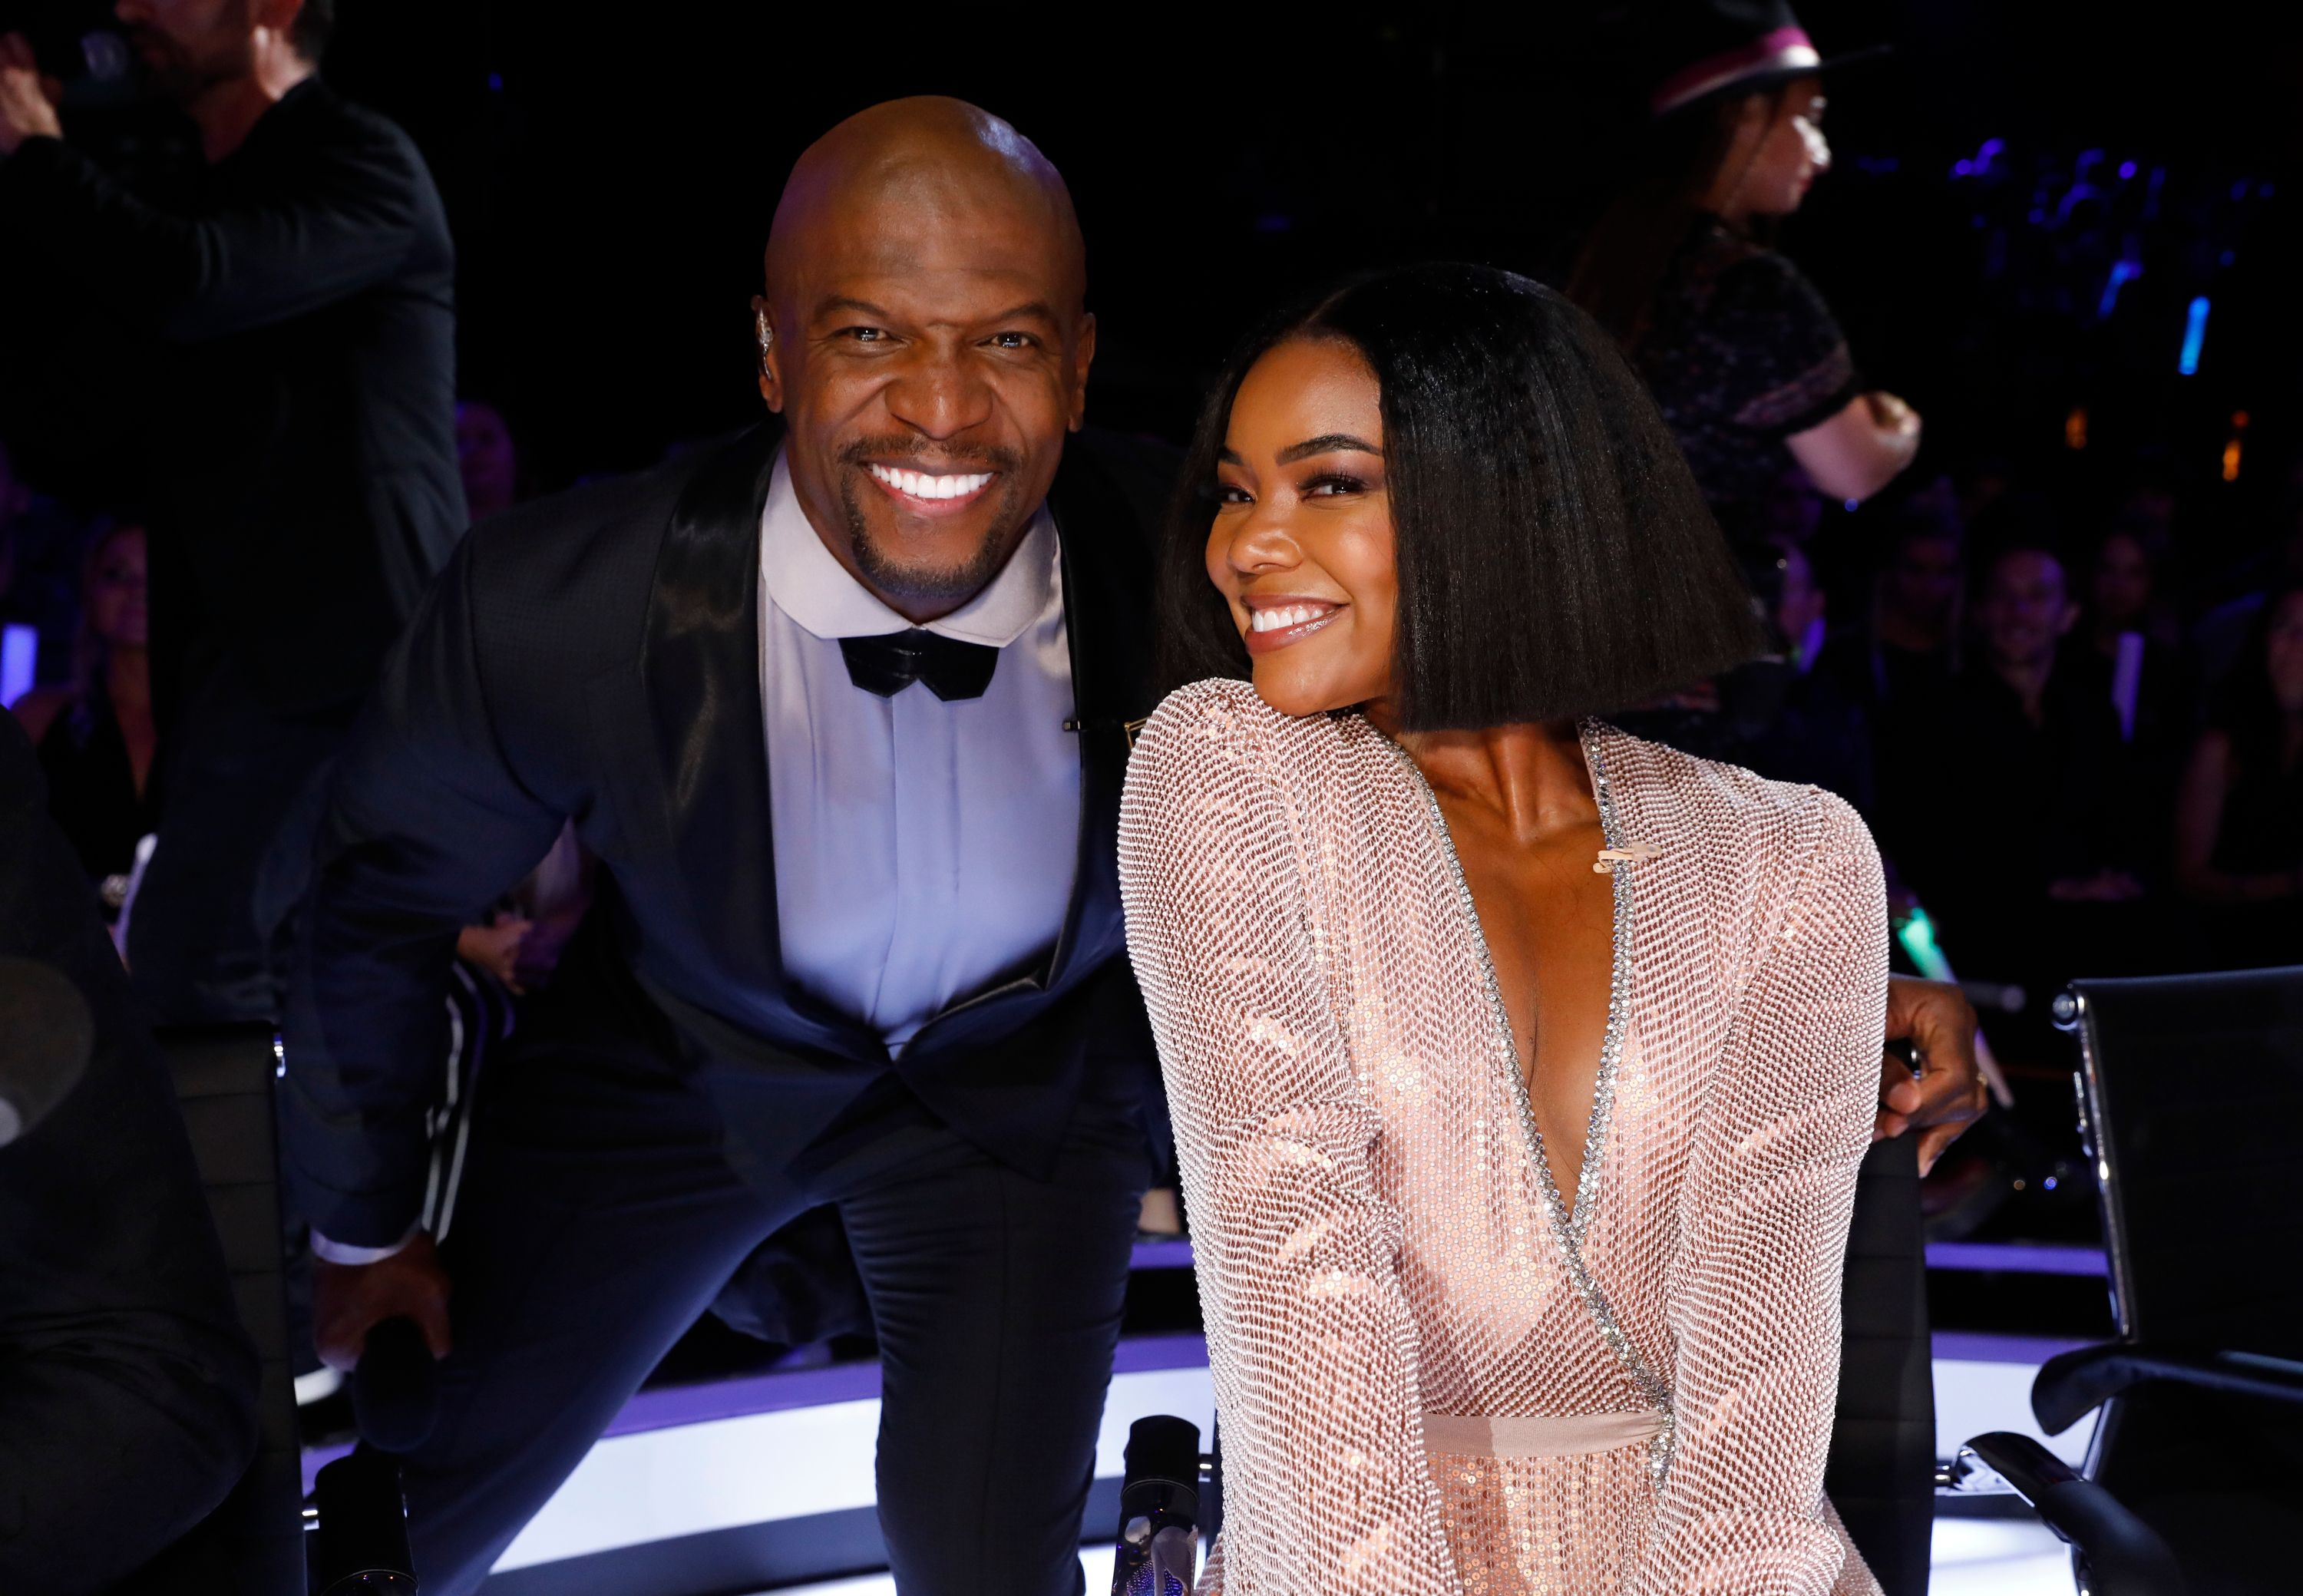 Terry Crews (left) poses with his arm around Gabrielle Union's (right) chair